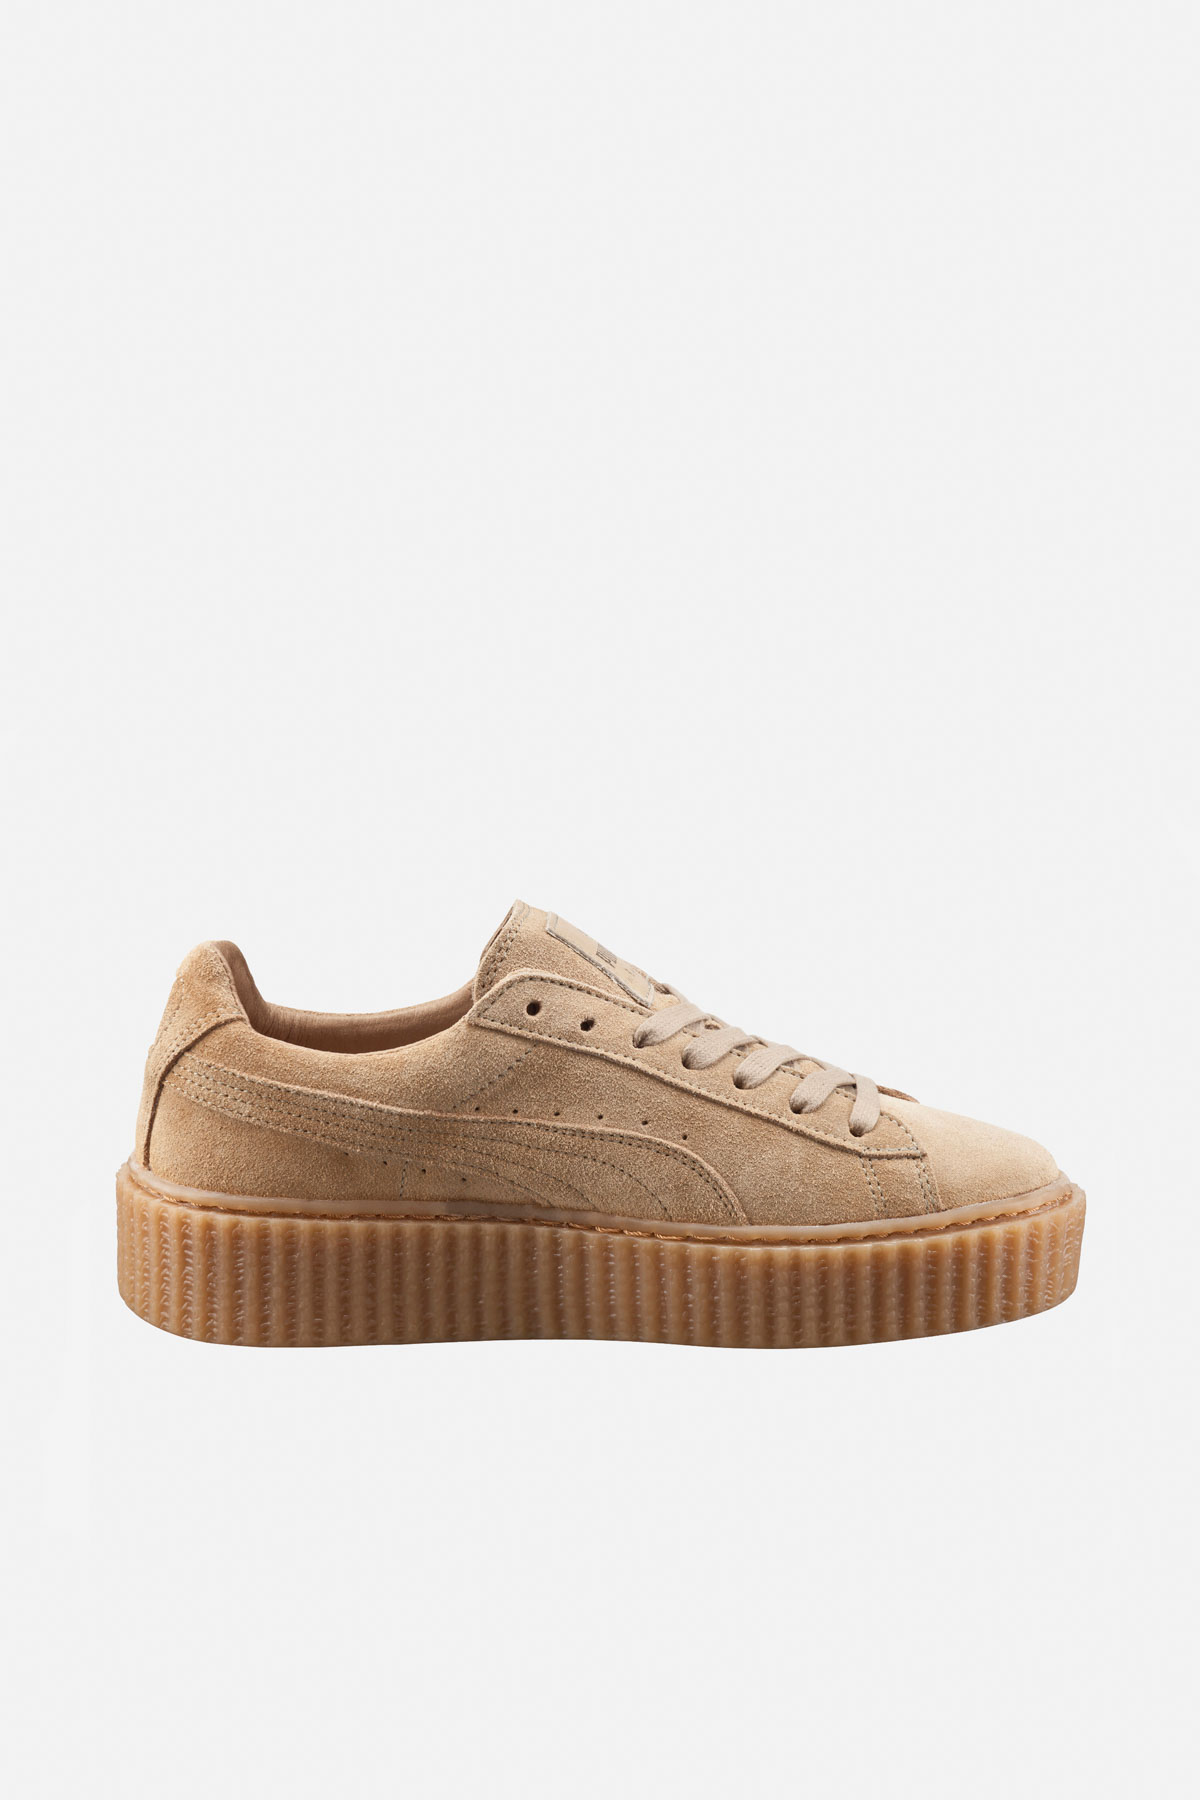 puma creeper rihanna shop online